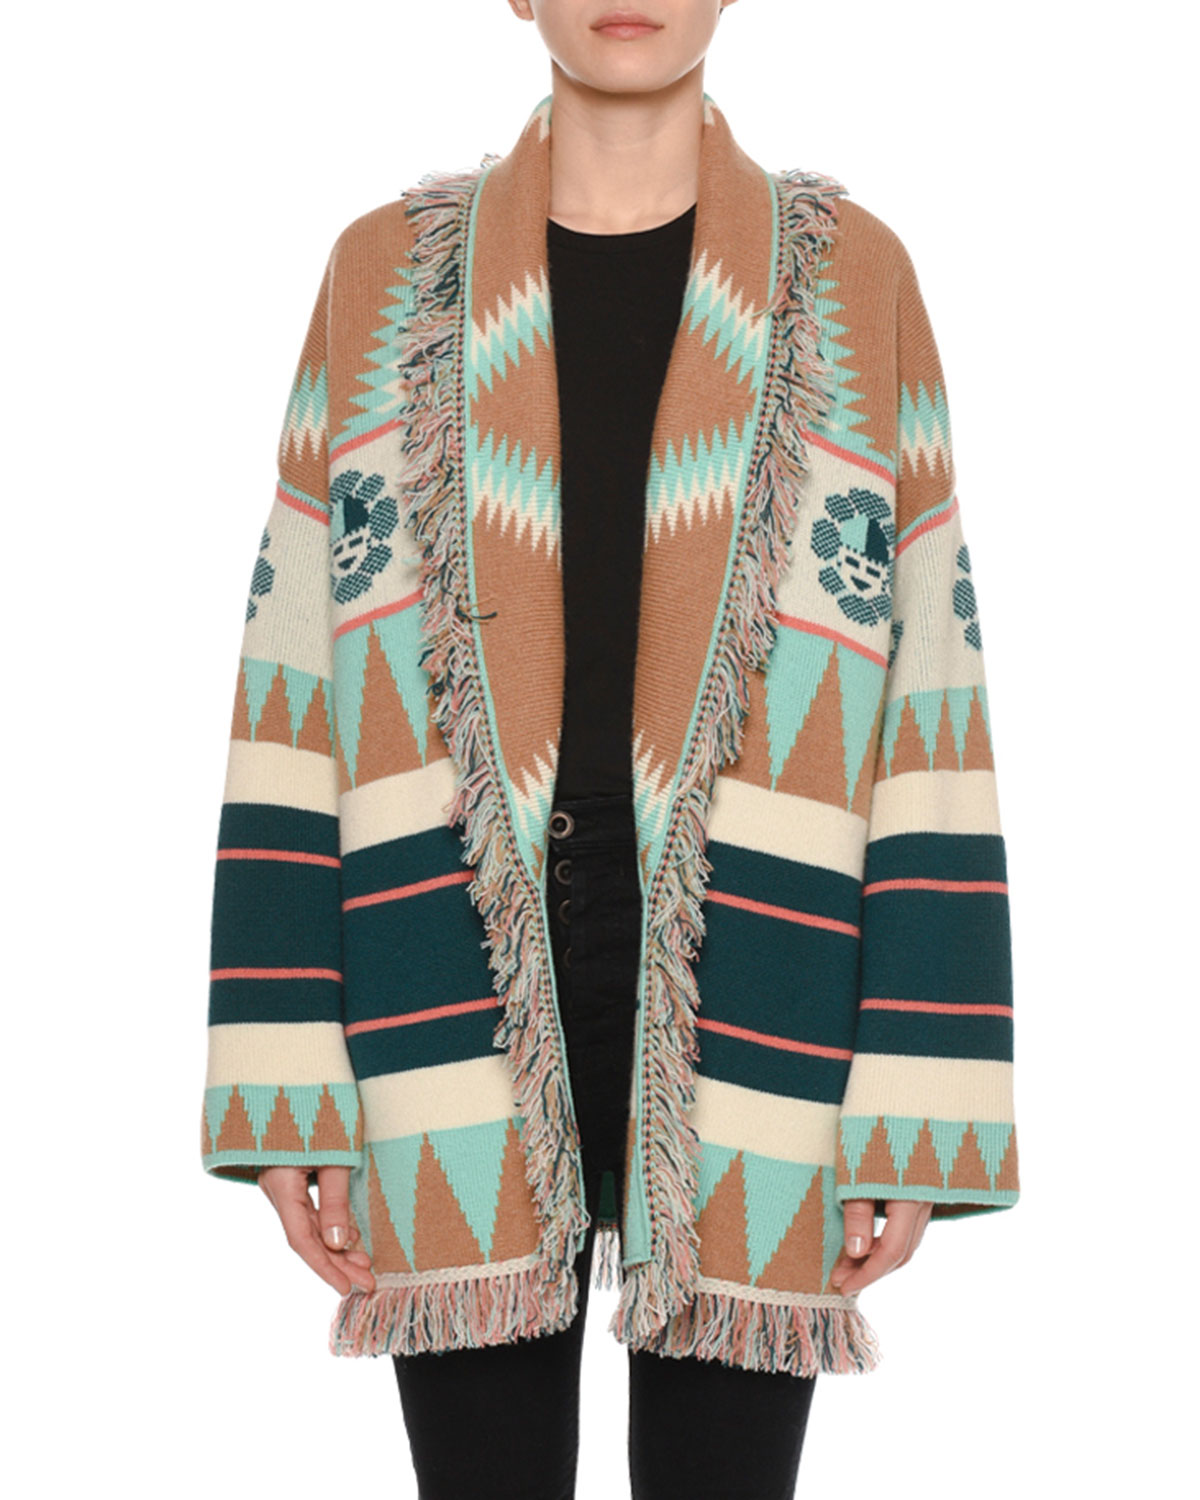 New Icon Self-Belt Jacquard Cashmere Cardigan in Multicoloured